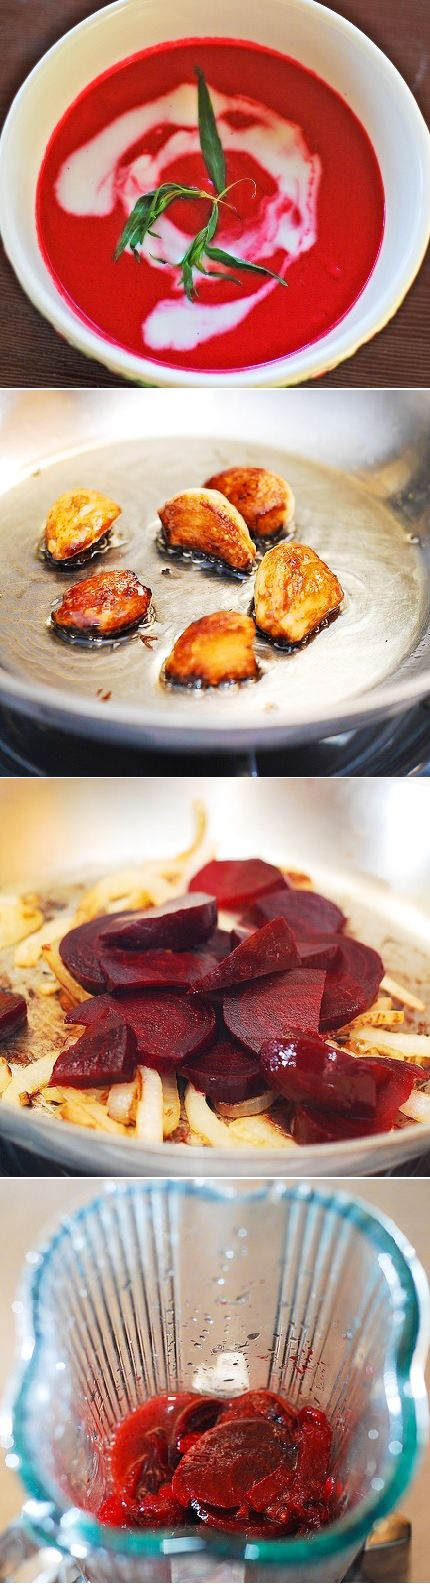 Roasted Garlic And Beet Soup Recipes — Dishmaps